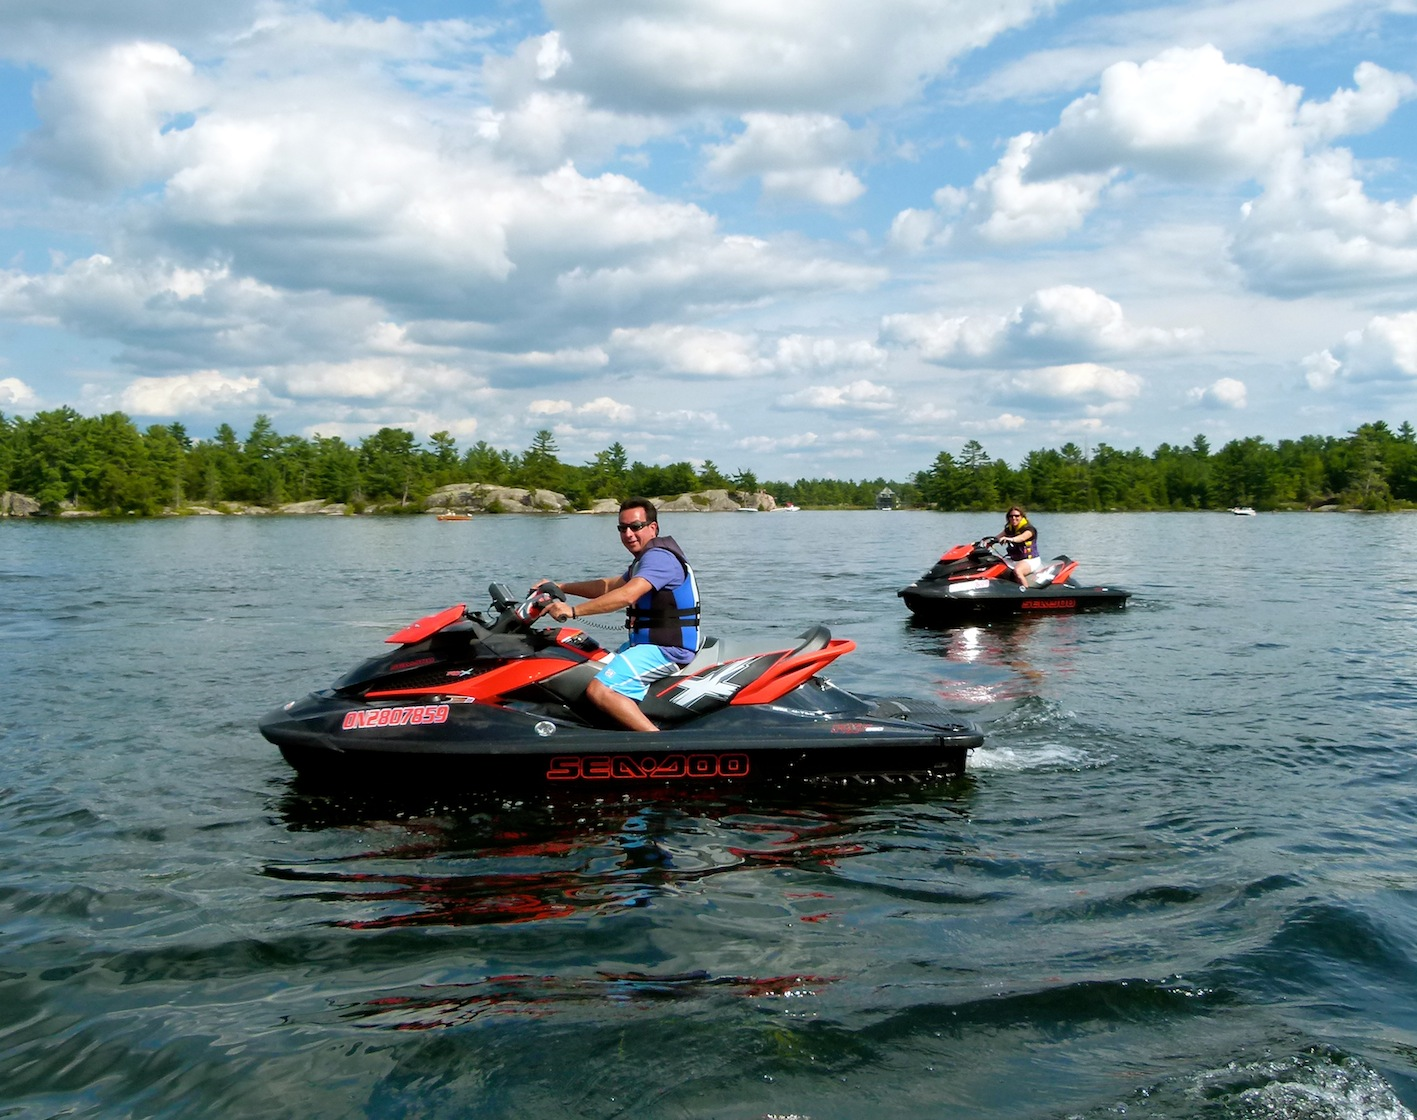 Floating on Big Bald Lake, on our Kawartha Lakes Sea Doo tour